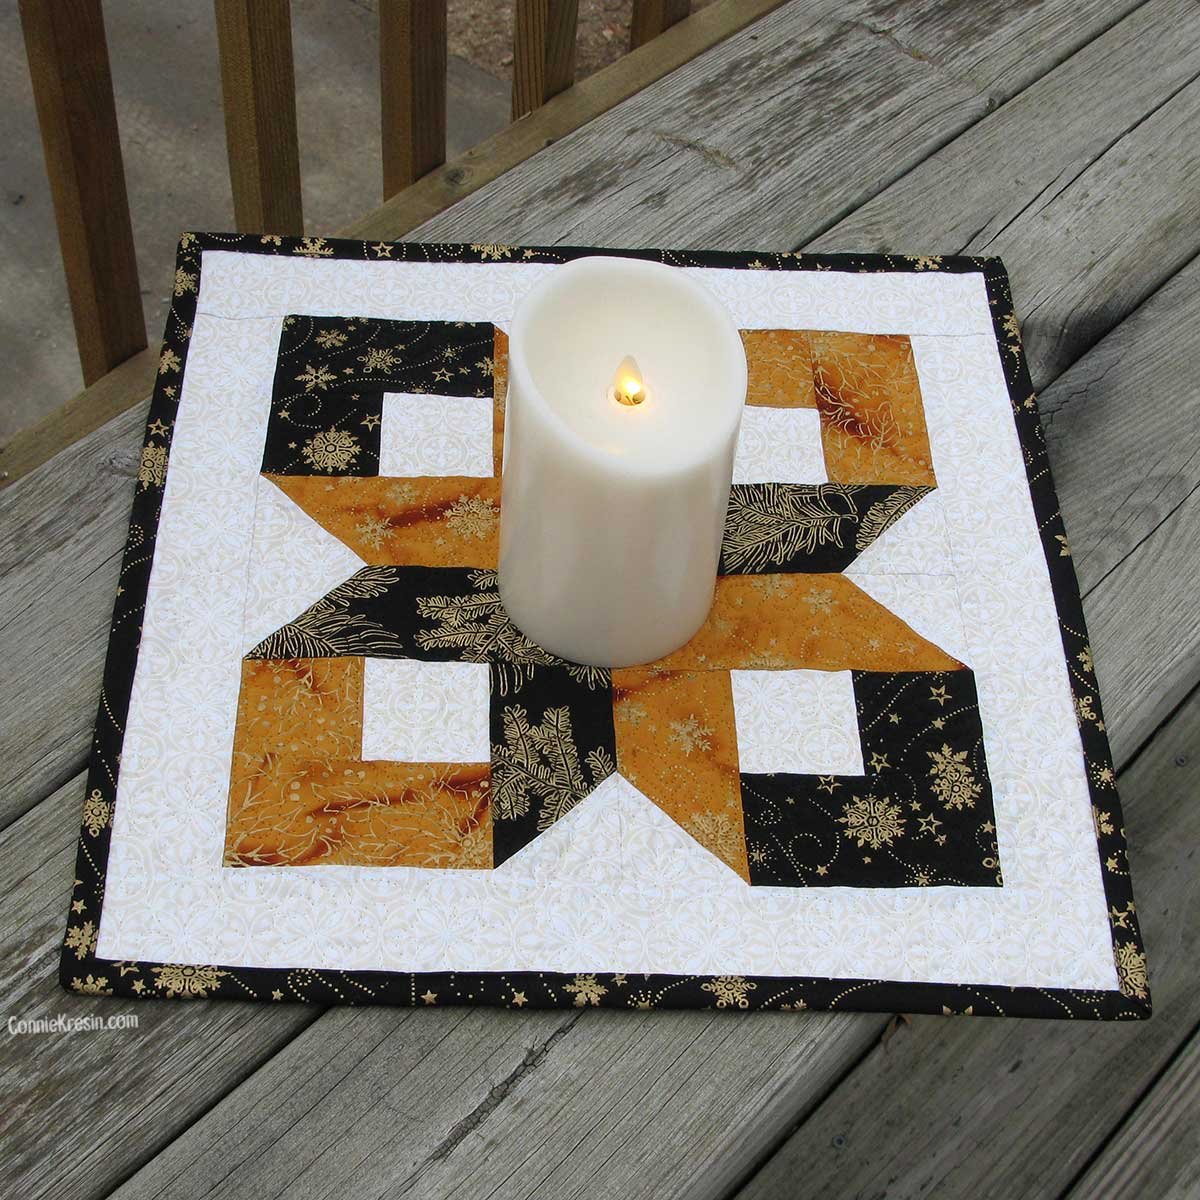 Box Quilt block Silent Night table topper or center piece on deck